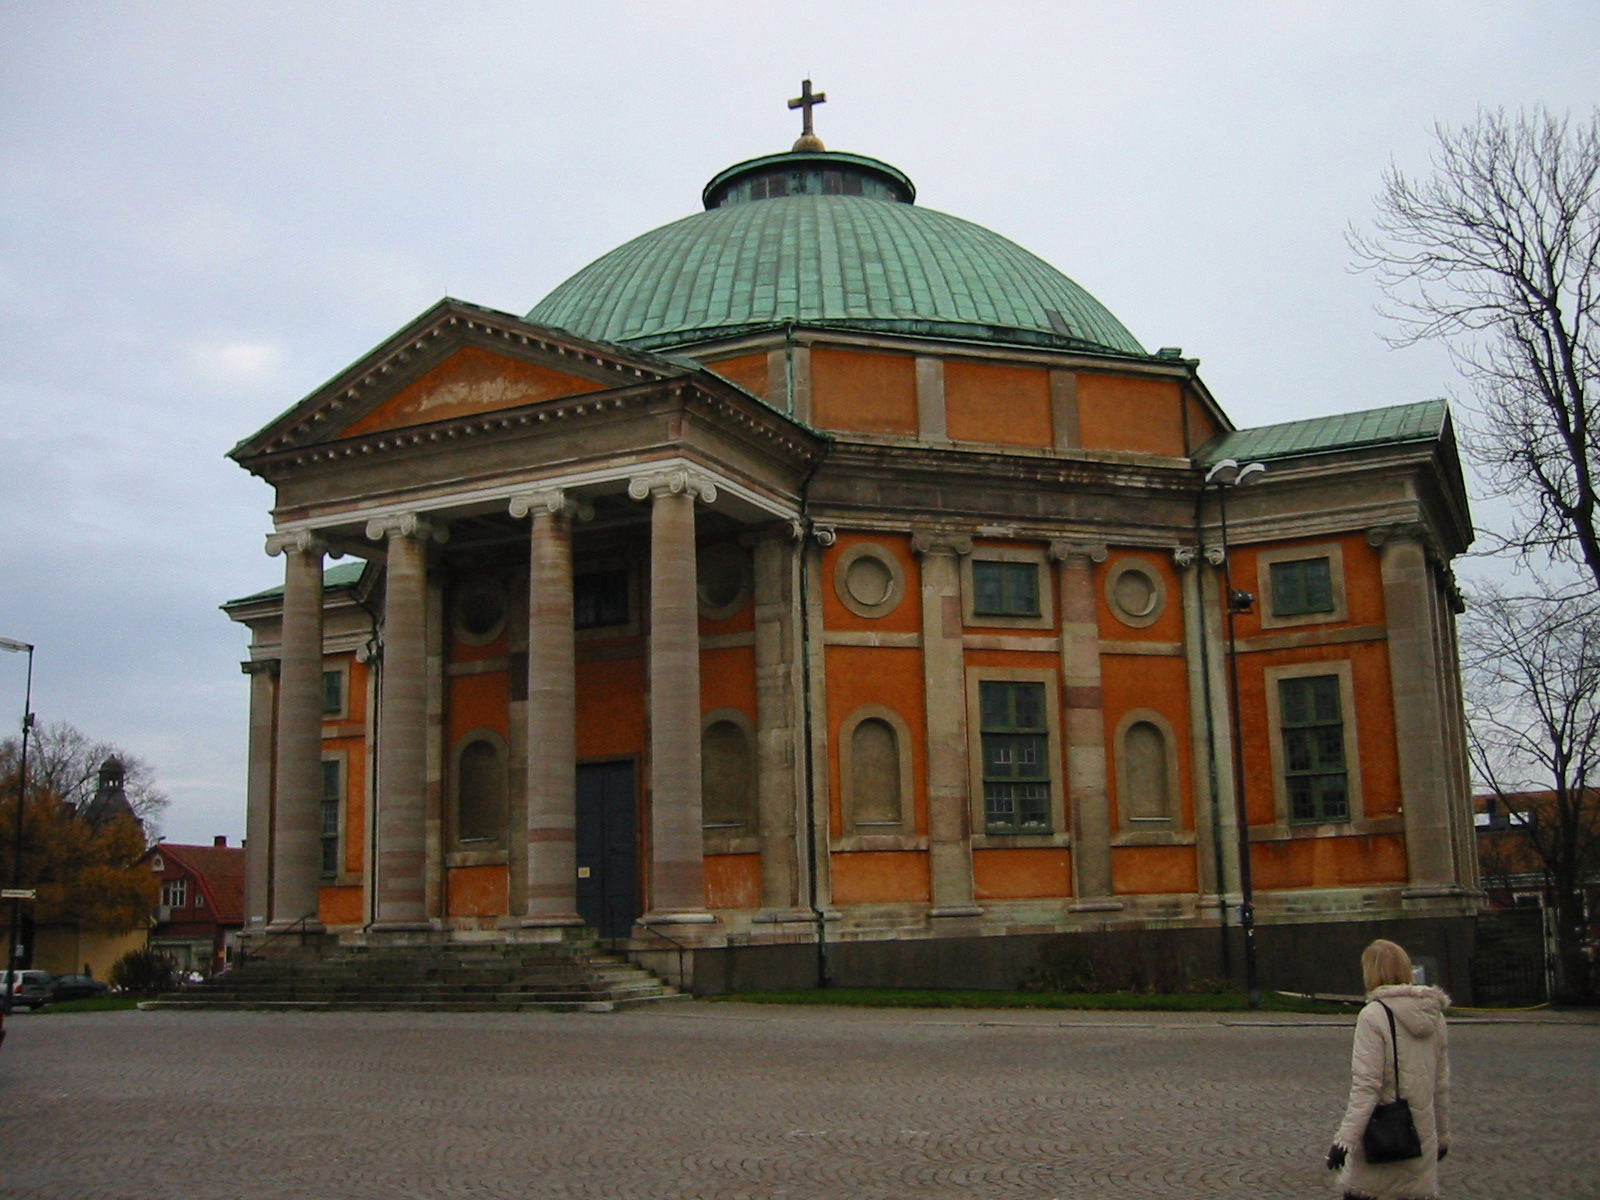 Church_of_Holy_Trinity_Karlskrona.jpg